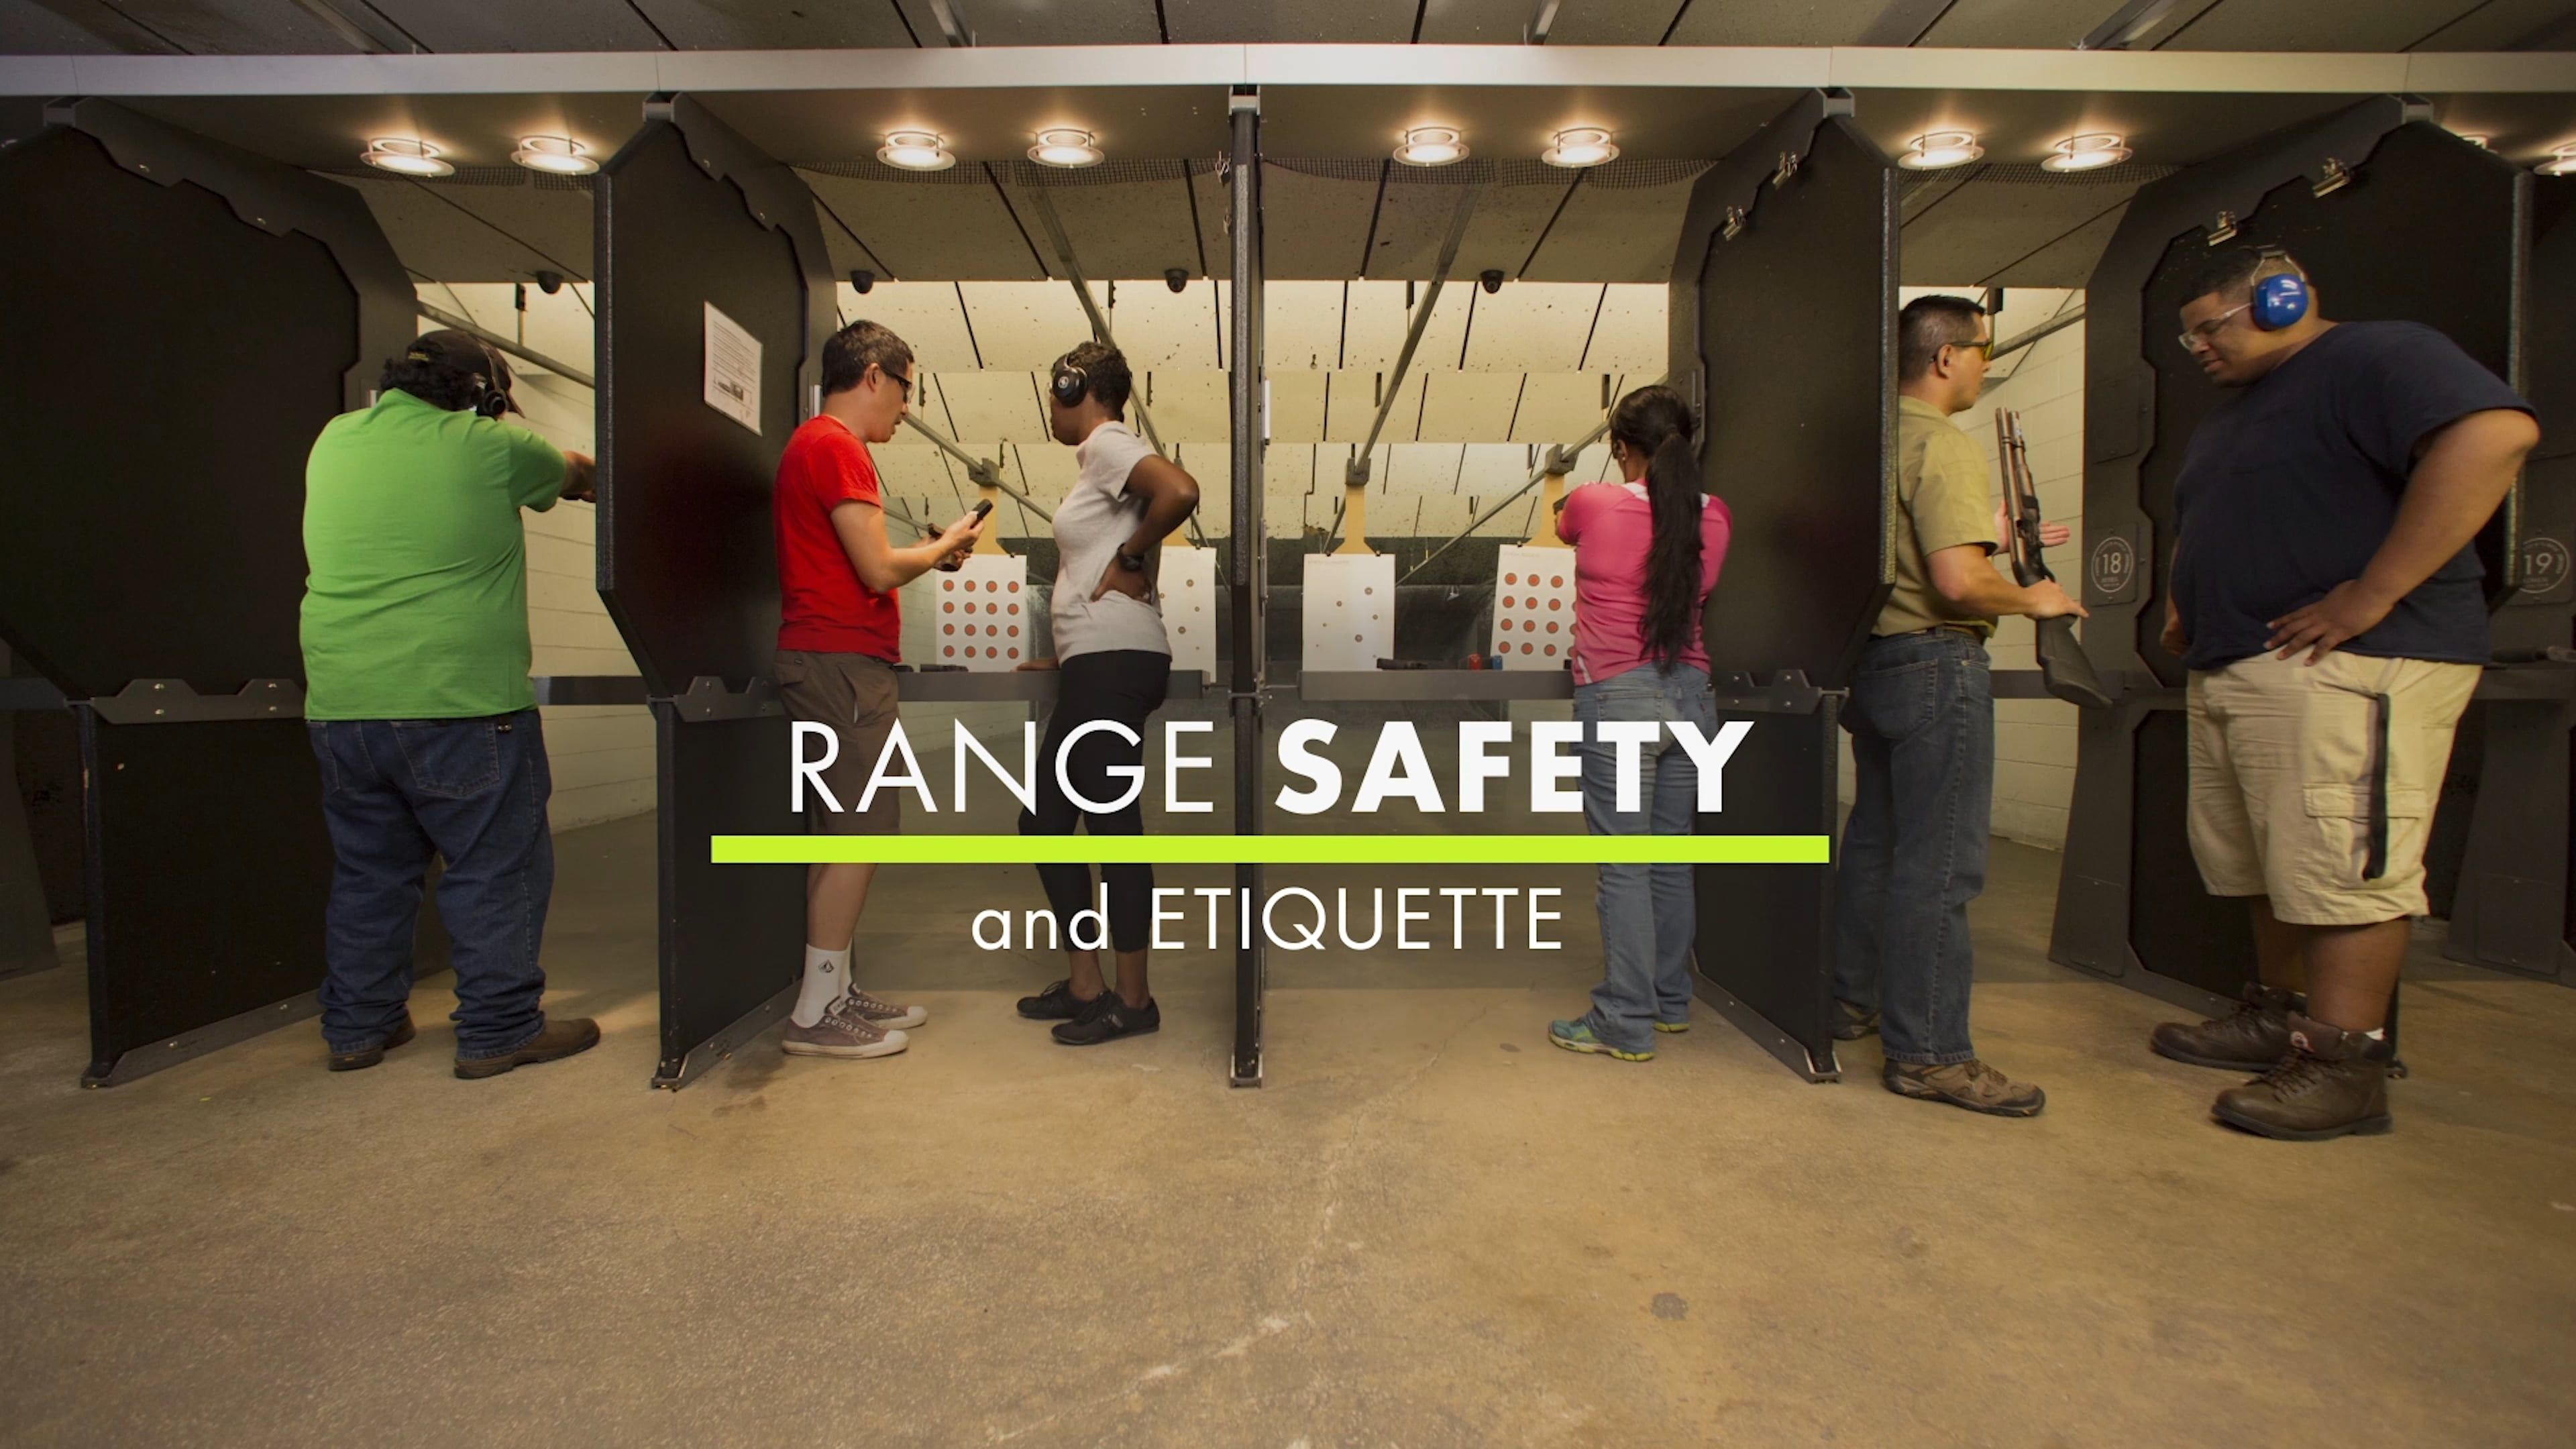 Introduction to range safety and etiquette etiquette